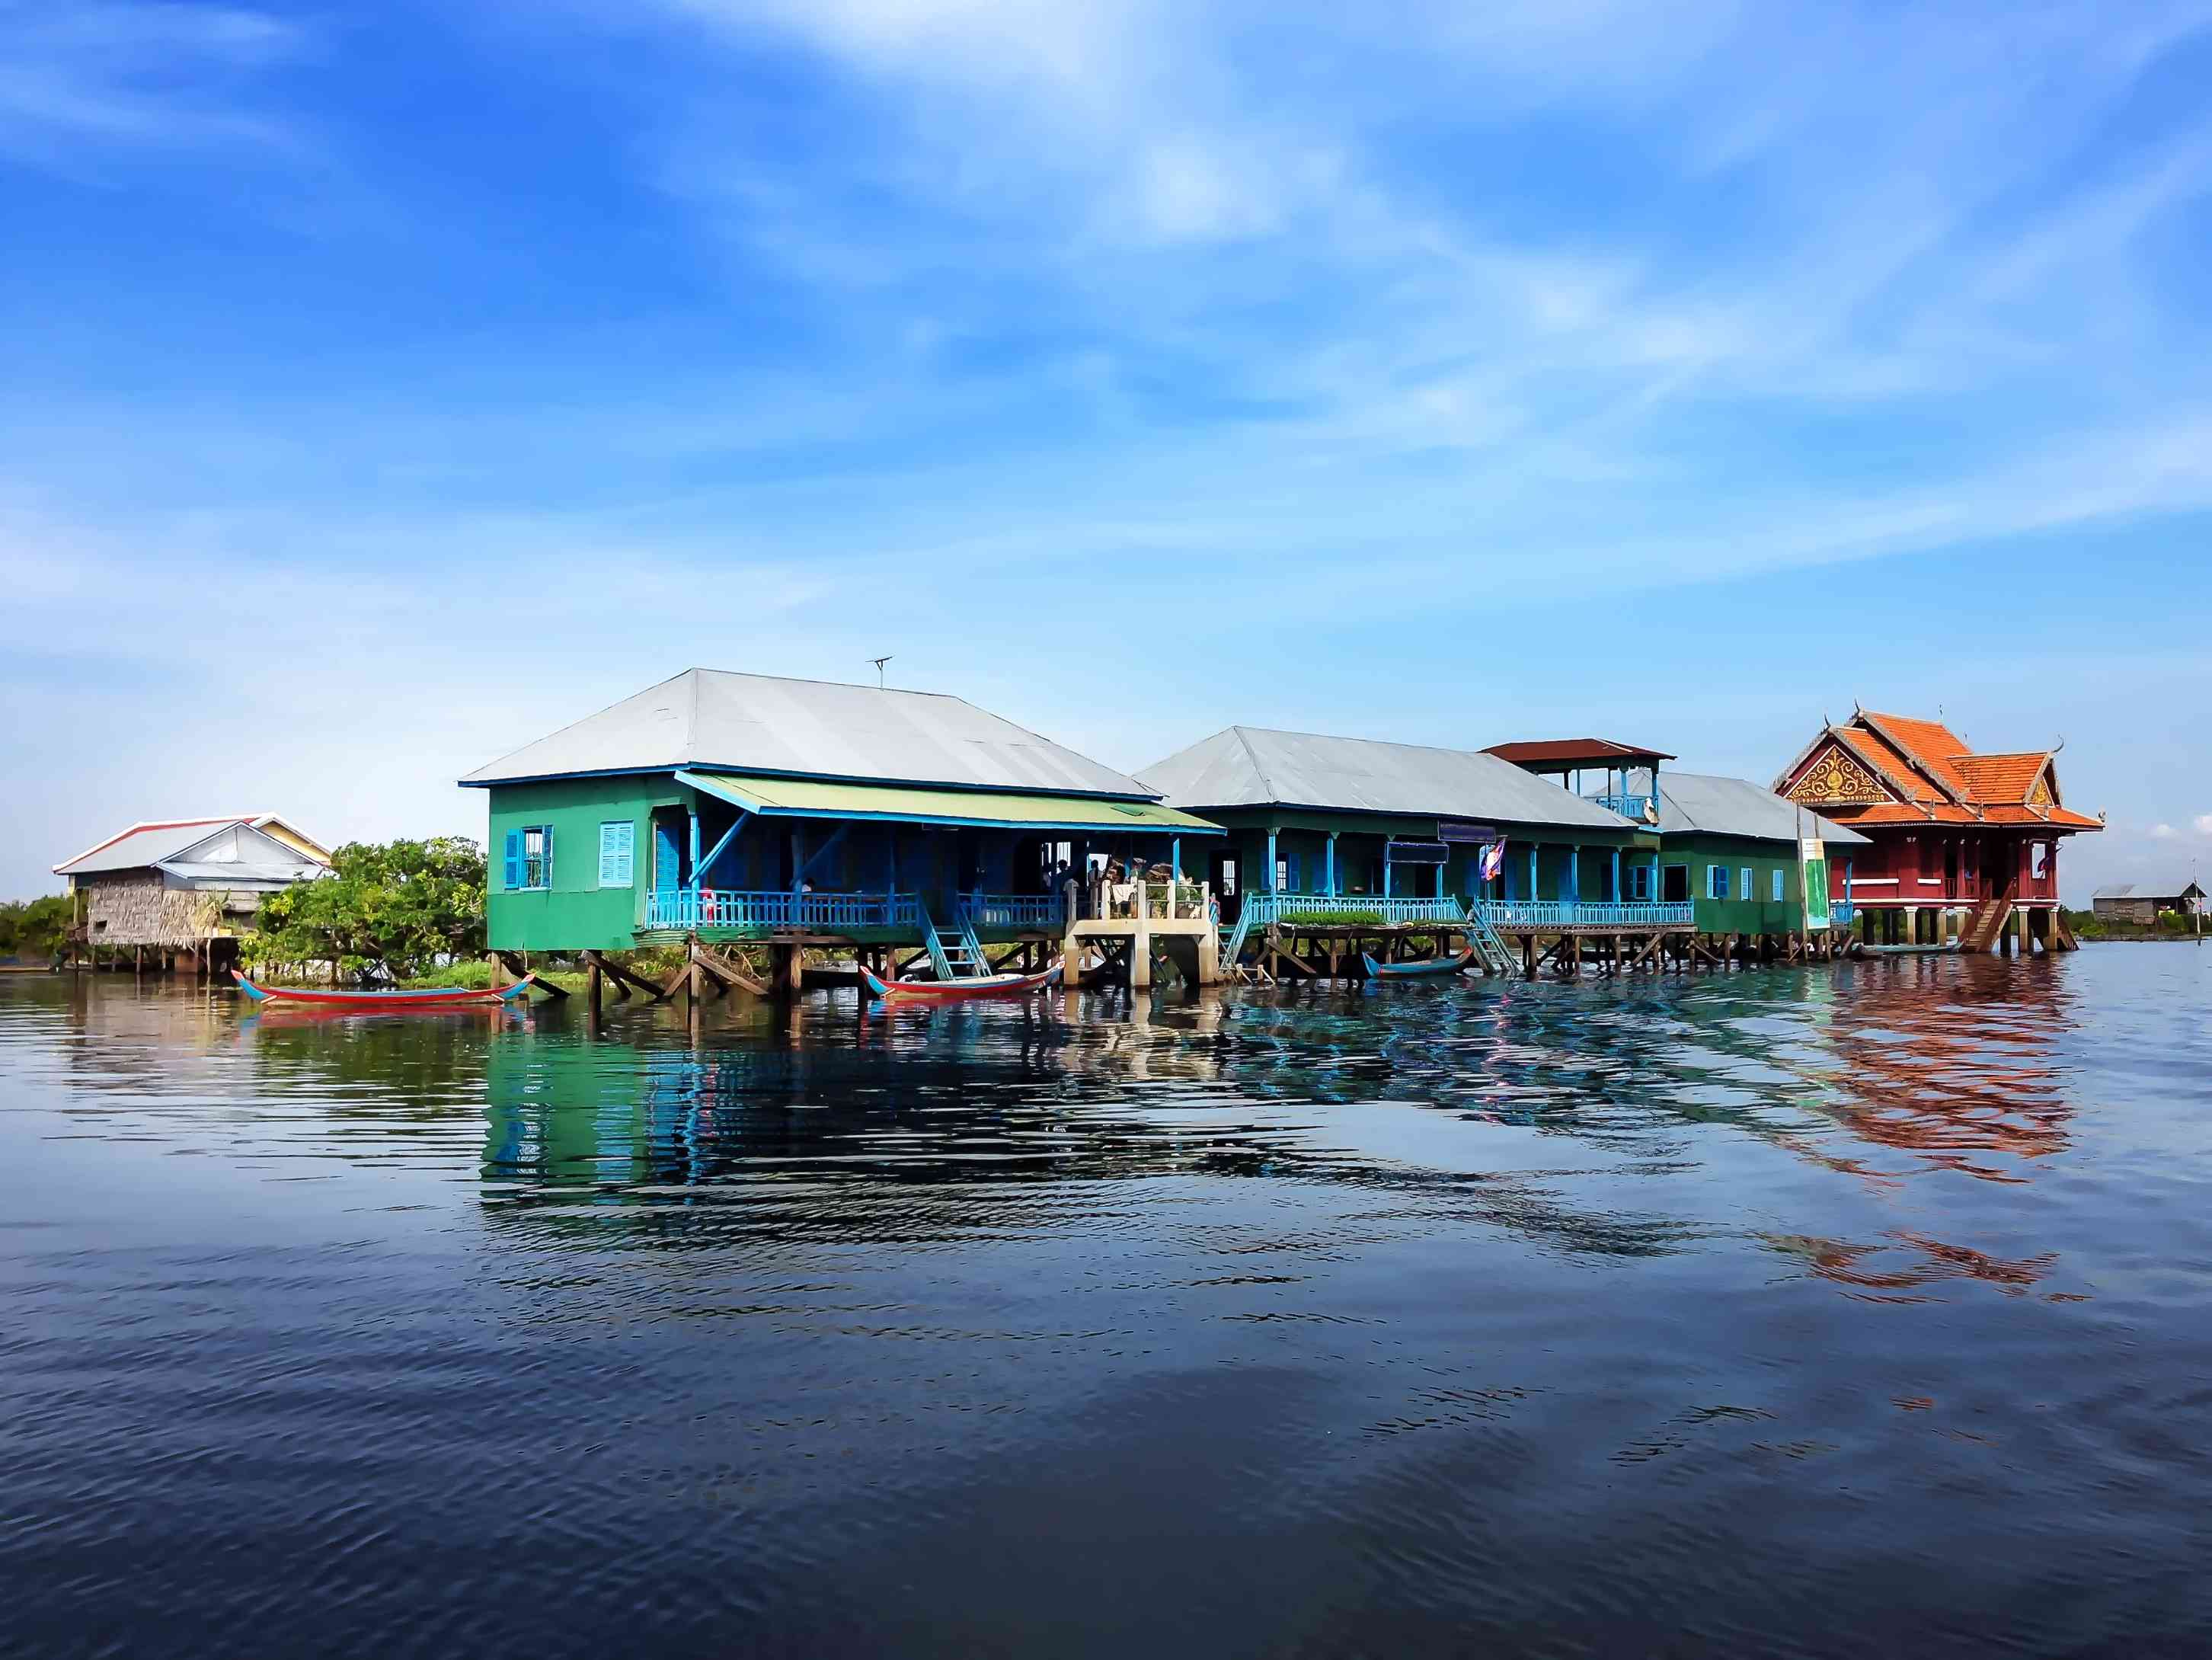 Colorful houses on stilts surrounded by lake water